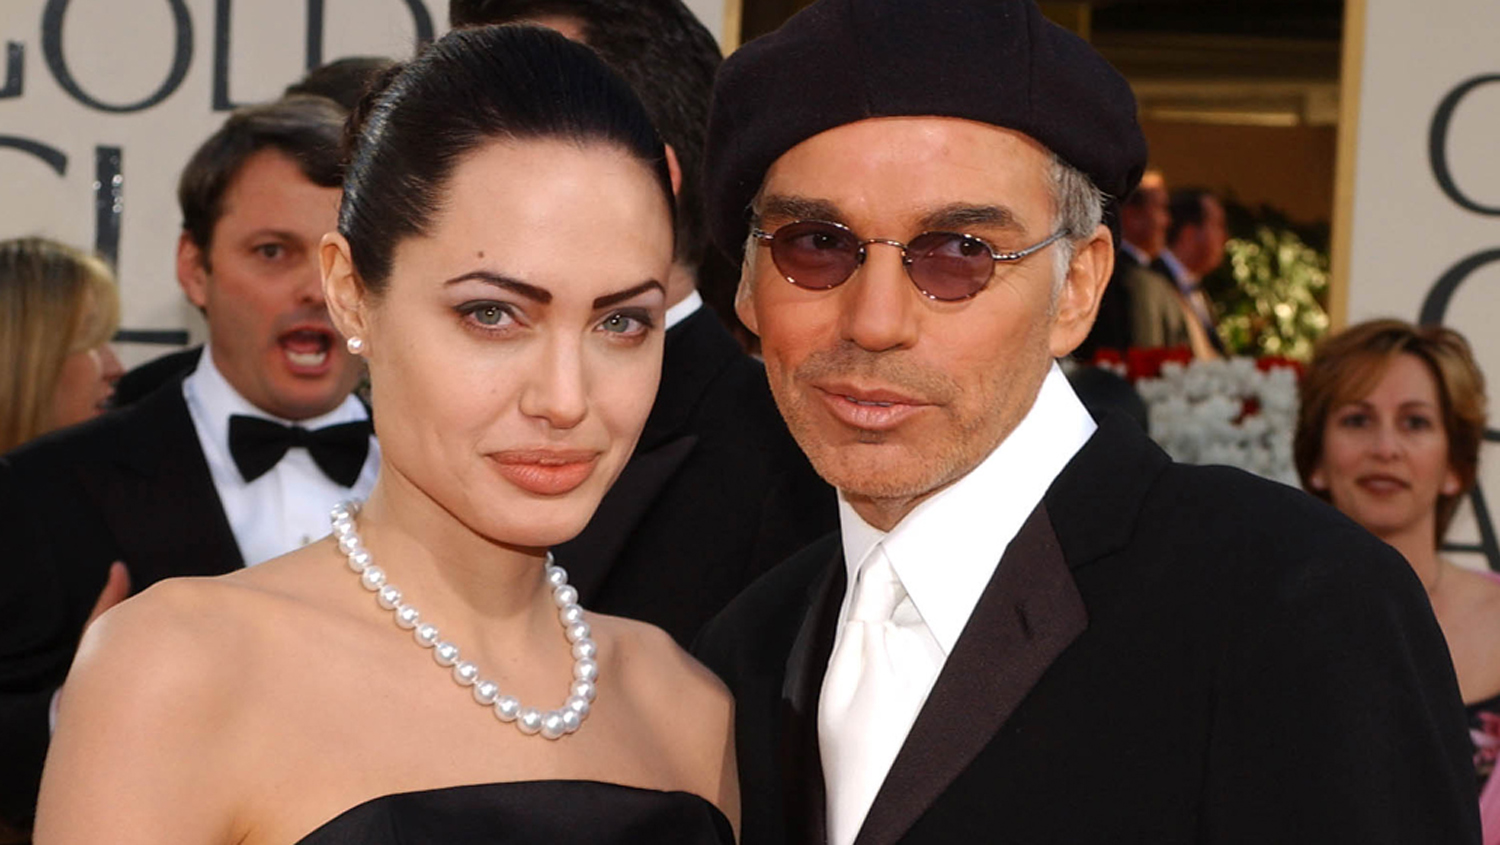 Billy Bob Thornton Explains Vials Of Blood Crazy Time With Angelina Jolie